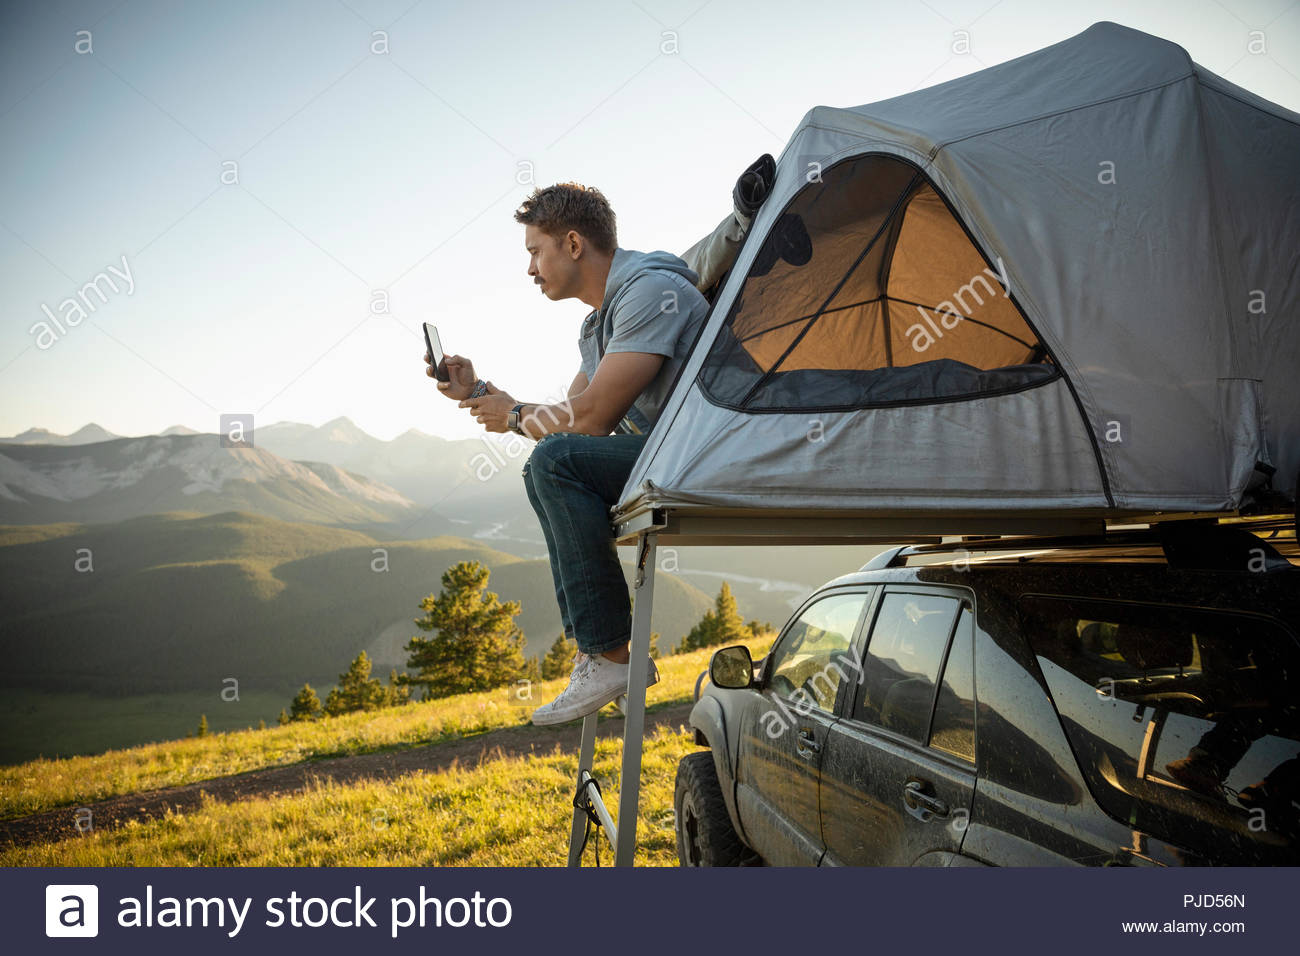 Serene man camping, relaxing at SUV rooftop tent in sunny, idyllic field, Alberta, Canada - Stock Image